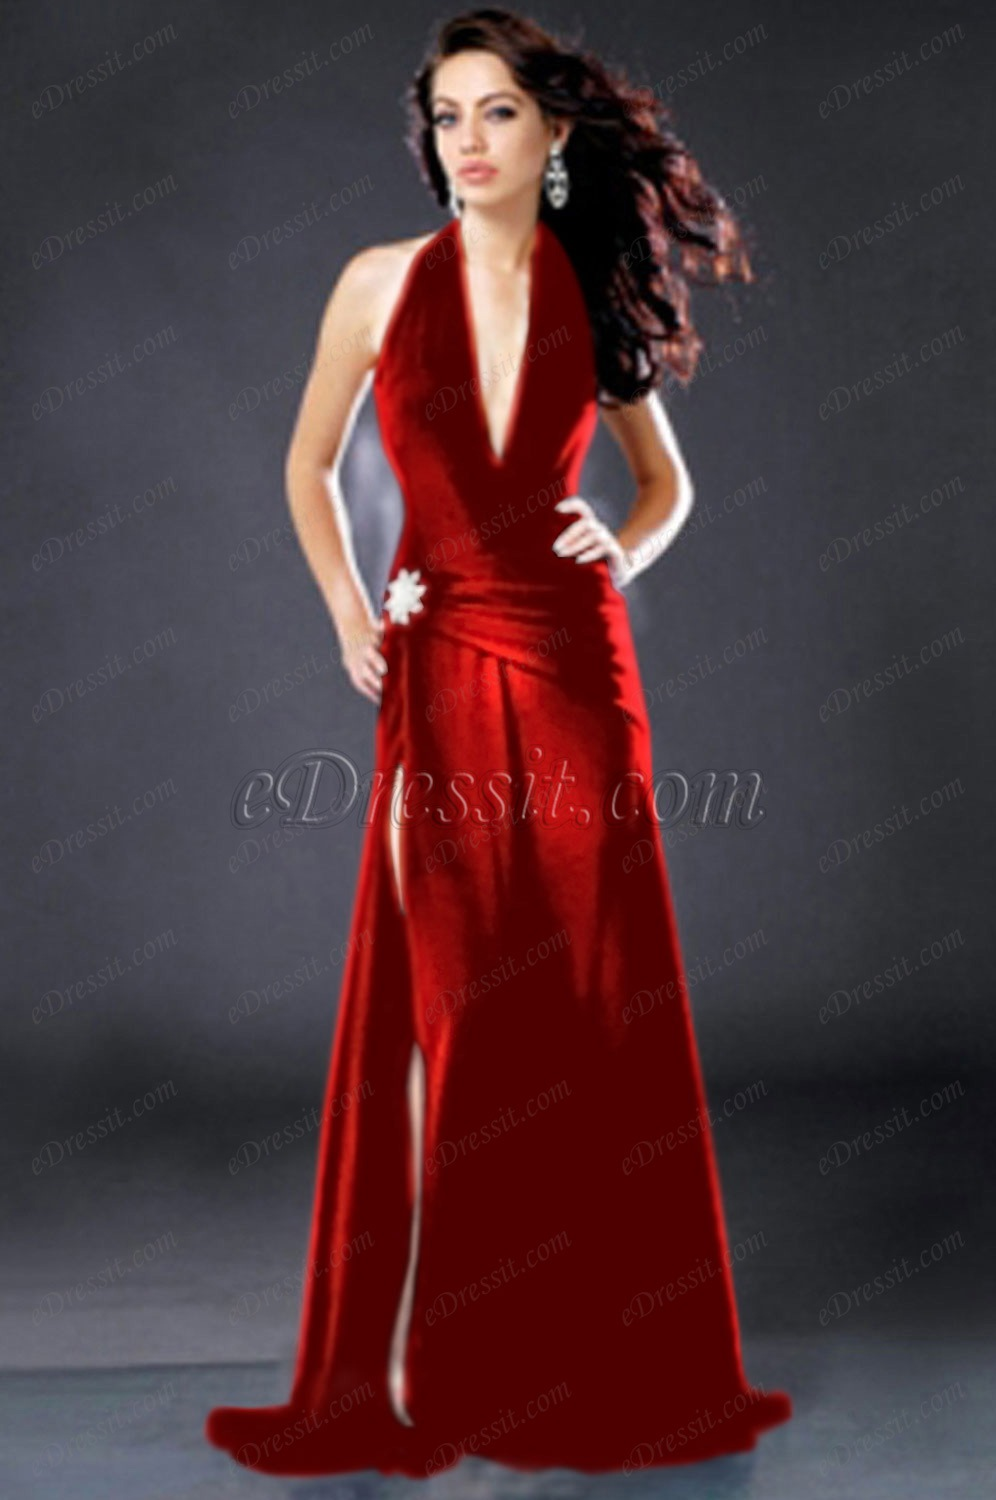 Clearance Sale !eDressit Angelina Jolie Elegant Ball Party Evening Dress (00775800D)